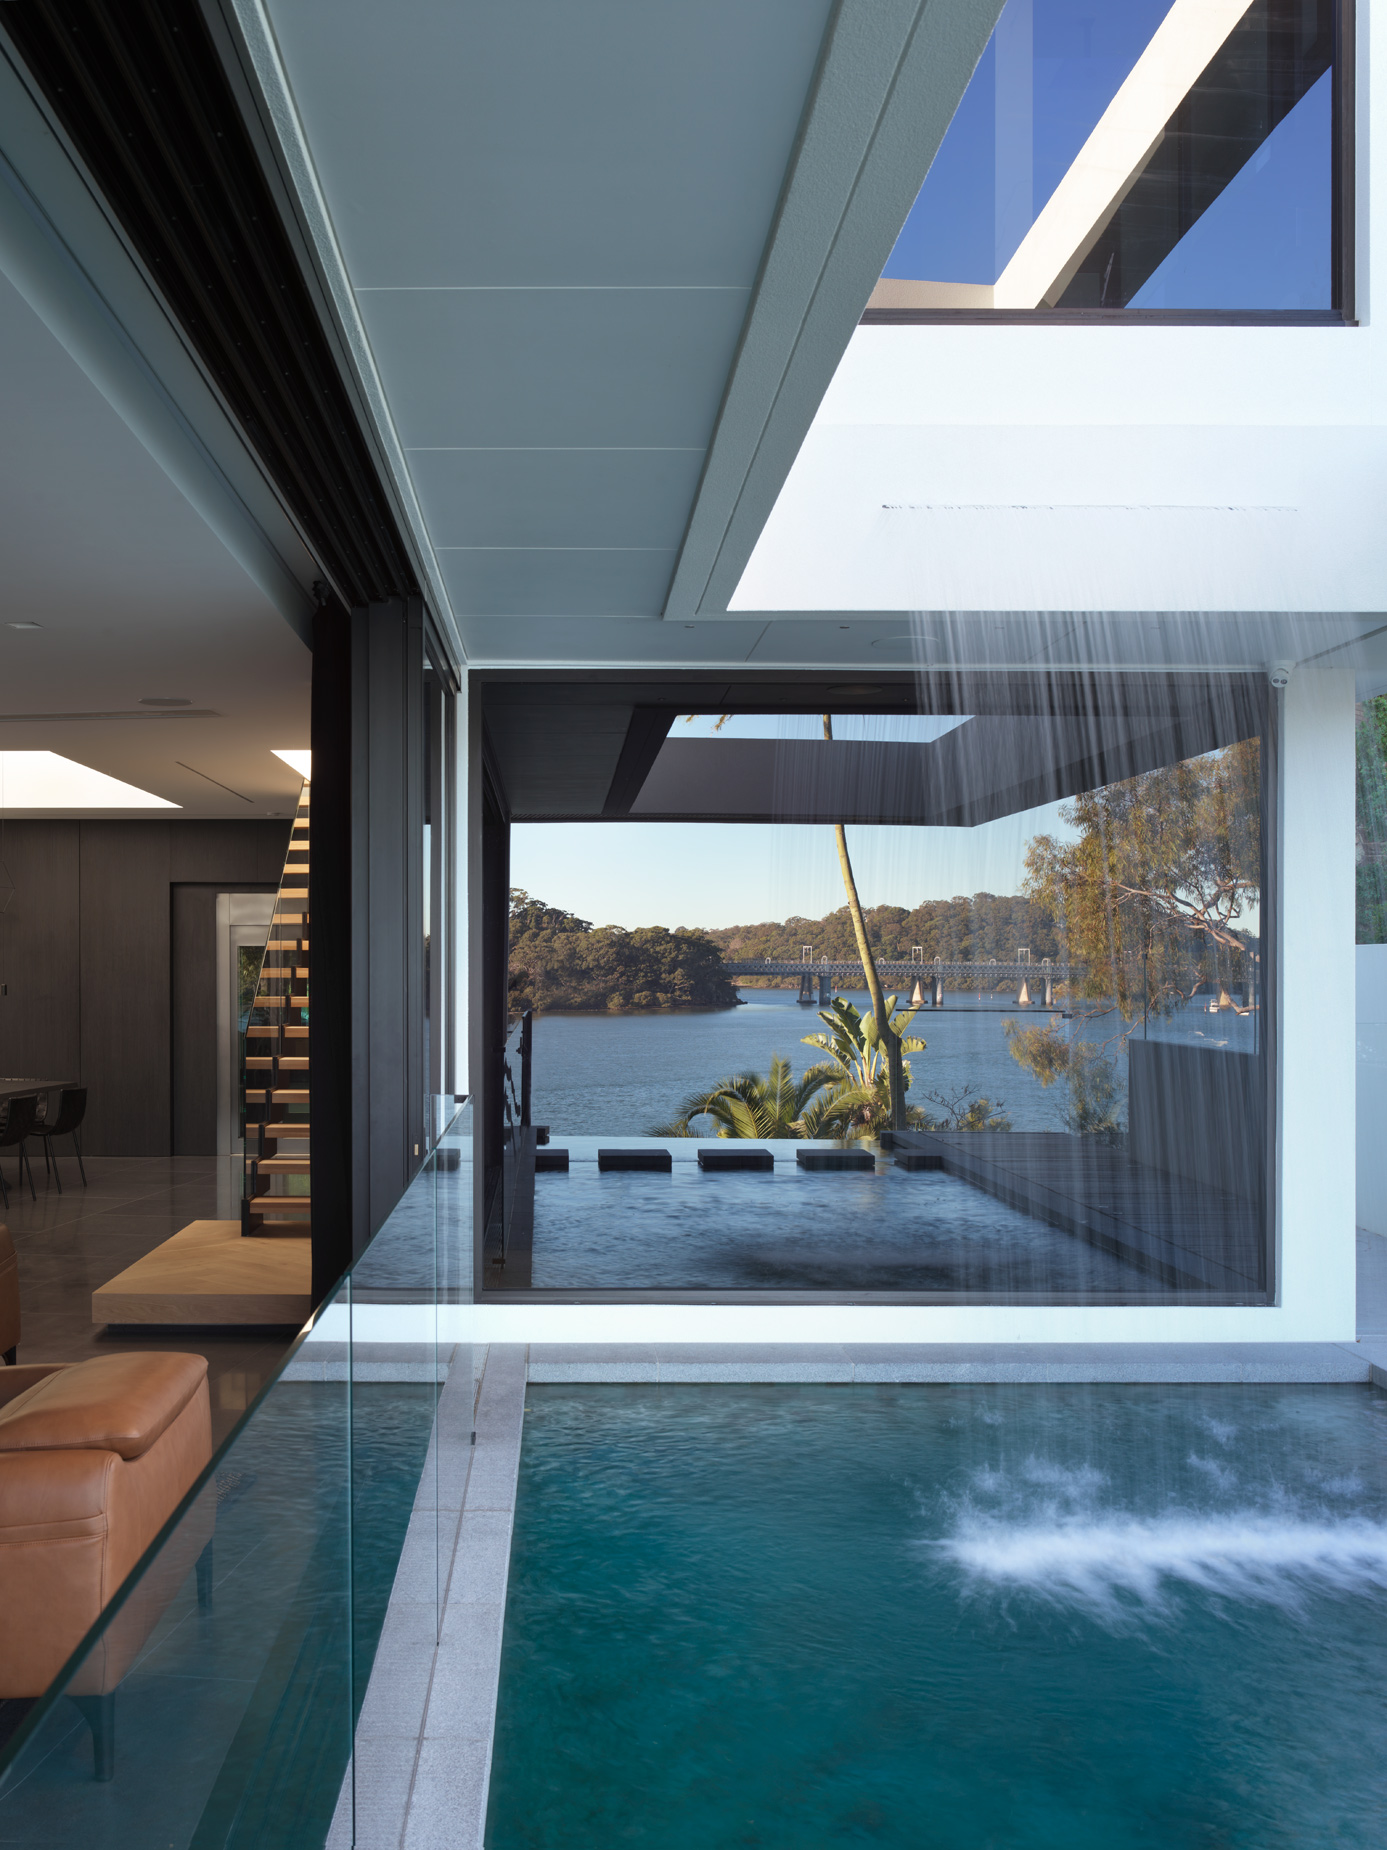 luke-butterly-2020-Oyster-Bay-House-by-Couvaras-Architecture-Sydney-NSW-10